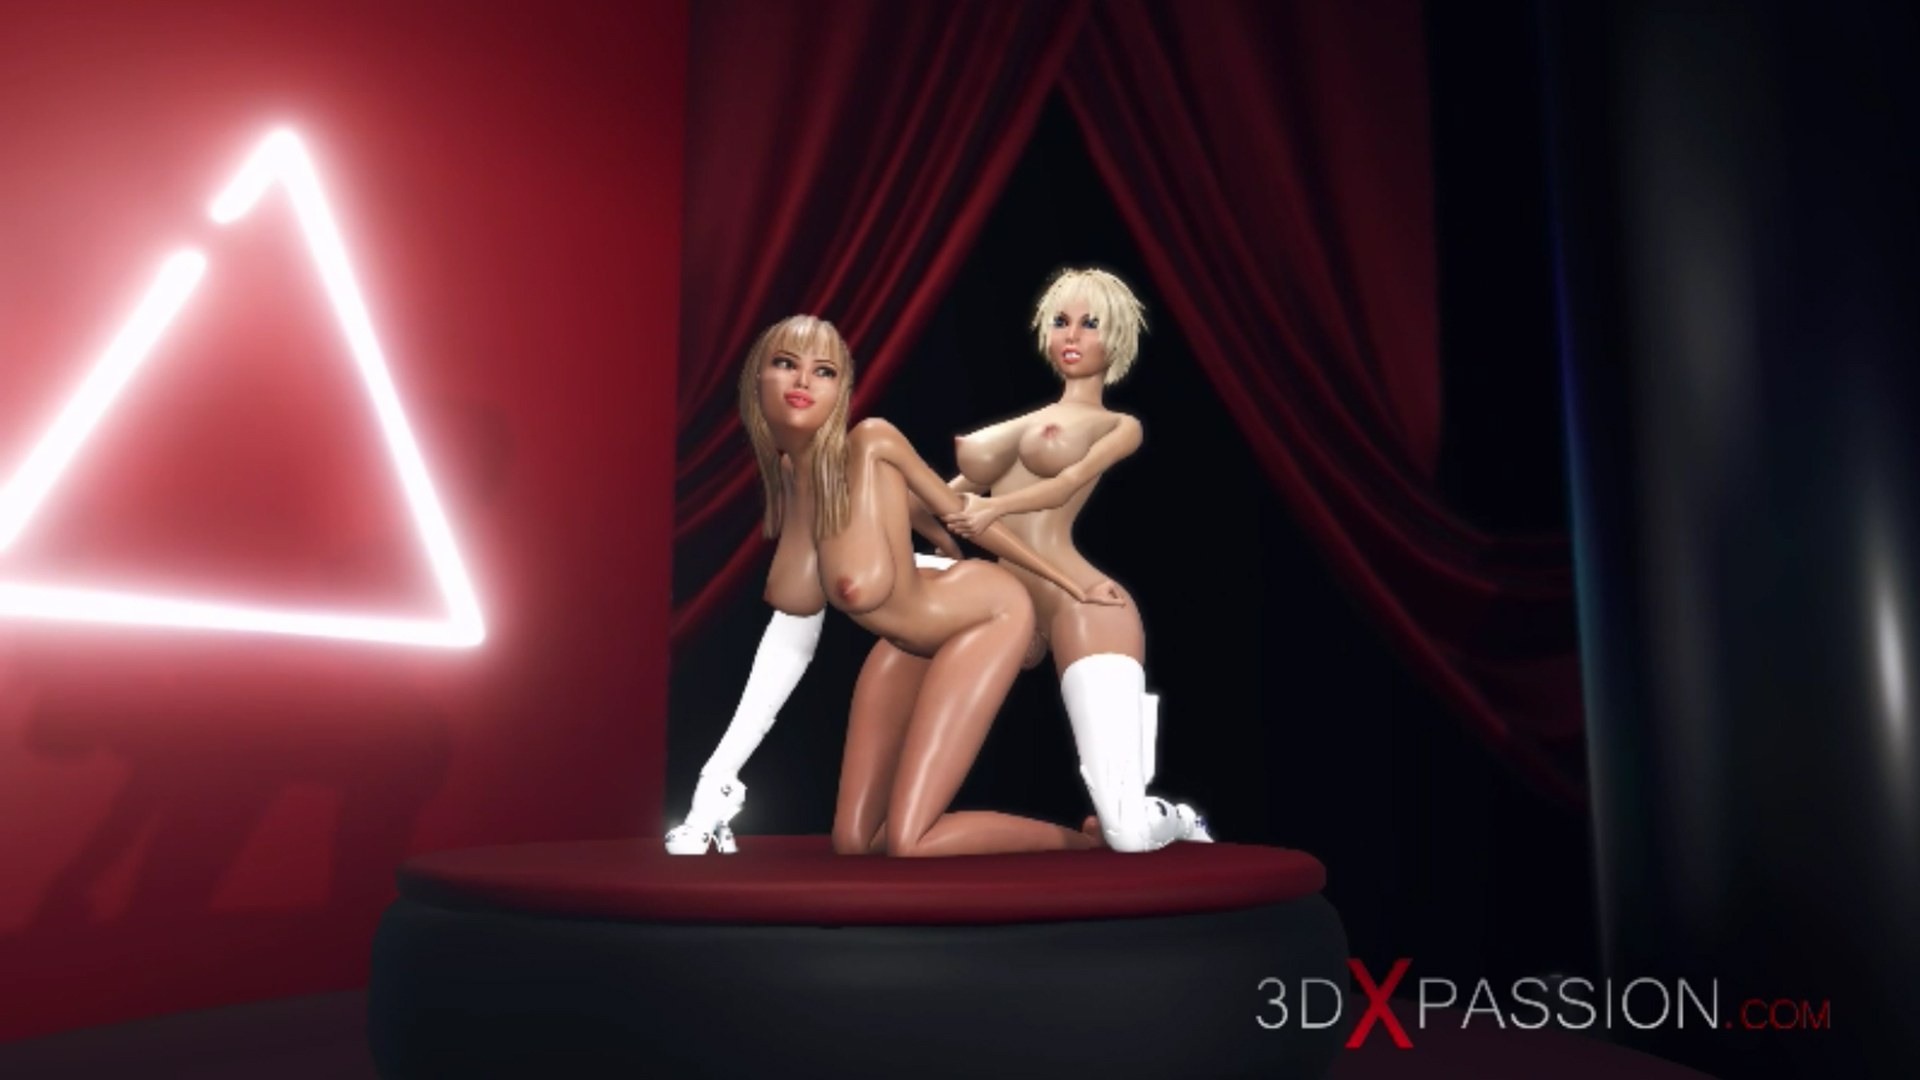 horny blonde ass fuck 3d dickgirl shemale fashion model podium